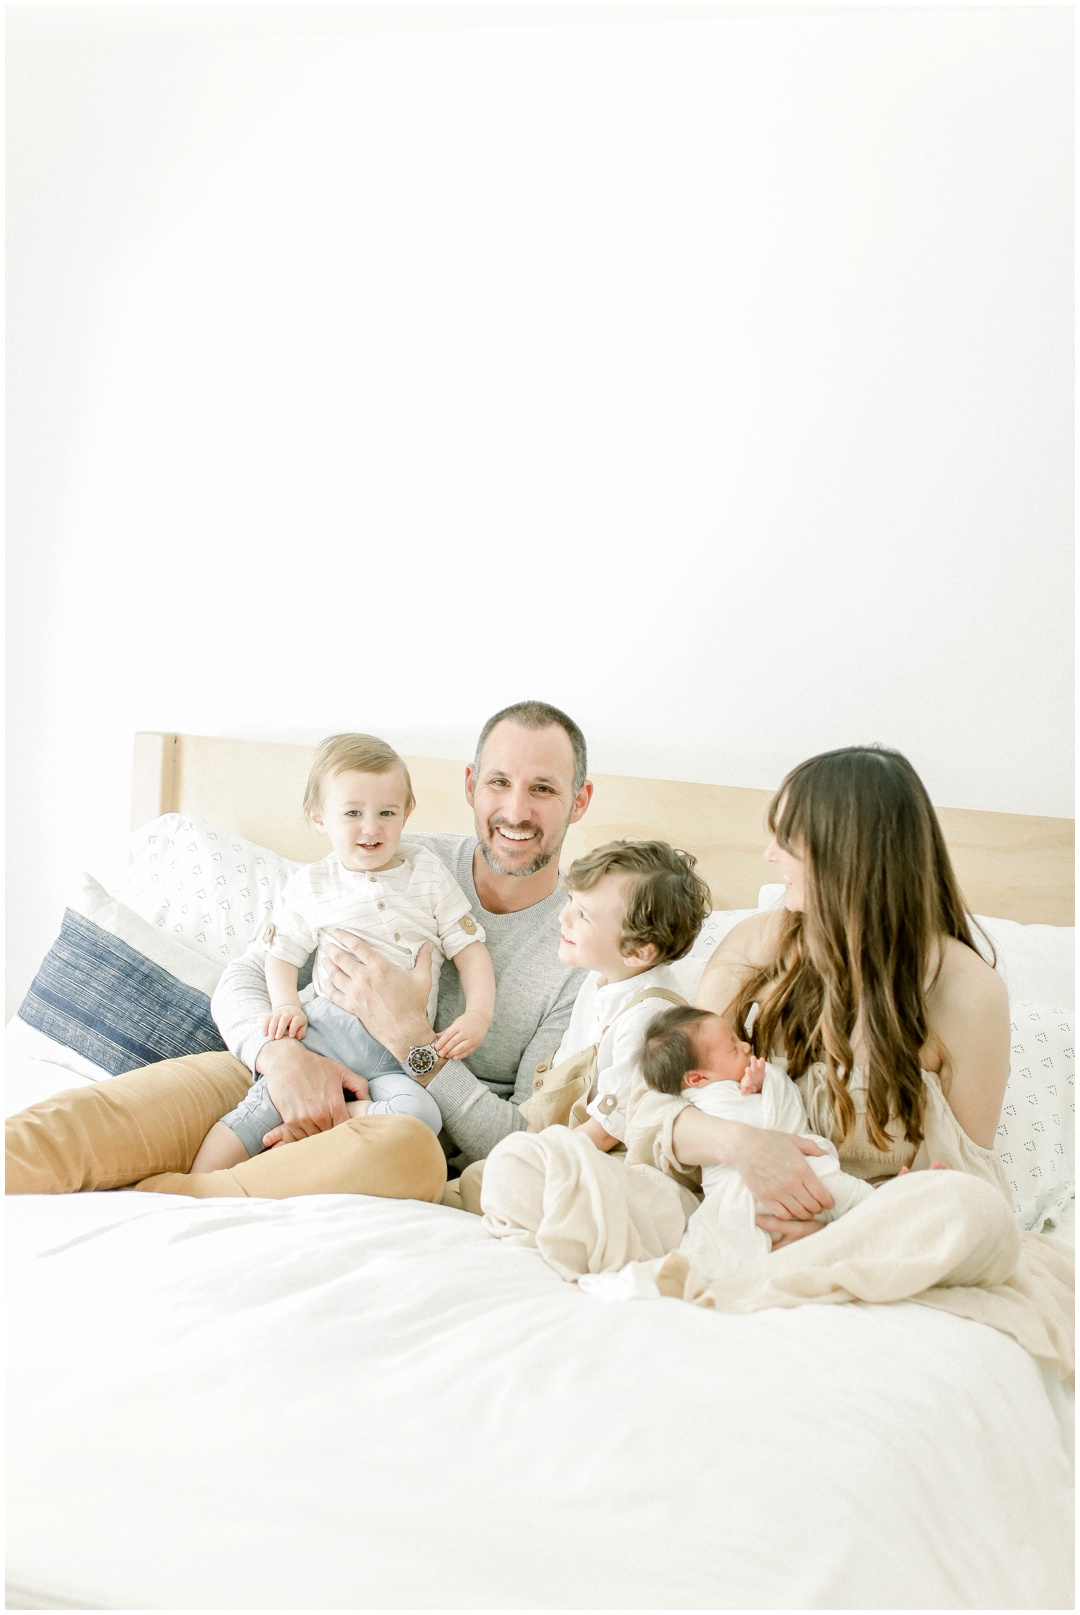 Newport_Beach_Newborn_Light_Airy_Natural_Photographer_Newport_Beach_In-Home_Photographer_Orange_County_Family_Photographer_Cori_Kleckner_Photography_Huntington_Beach_Photographer_Family_OC_Newborn_April_Levins_Newborn_Family__3269.jpg